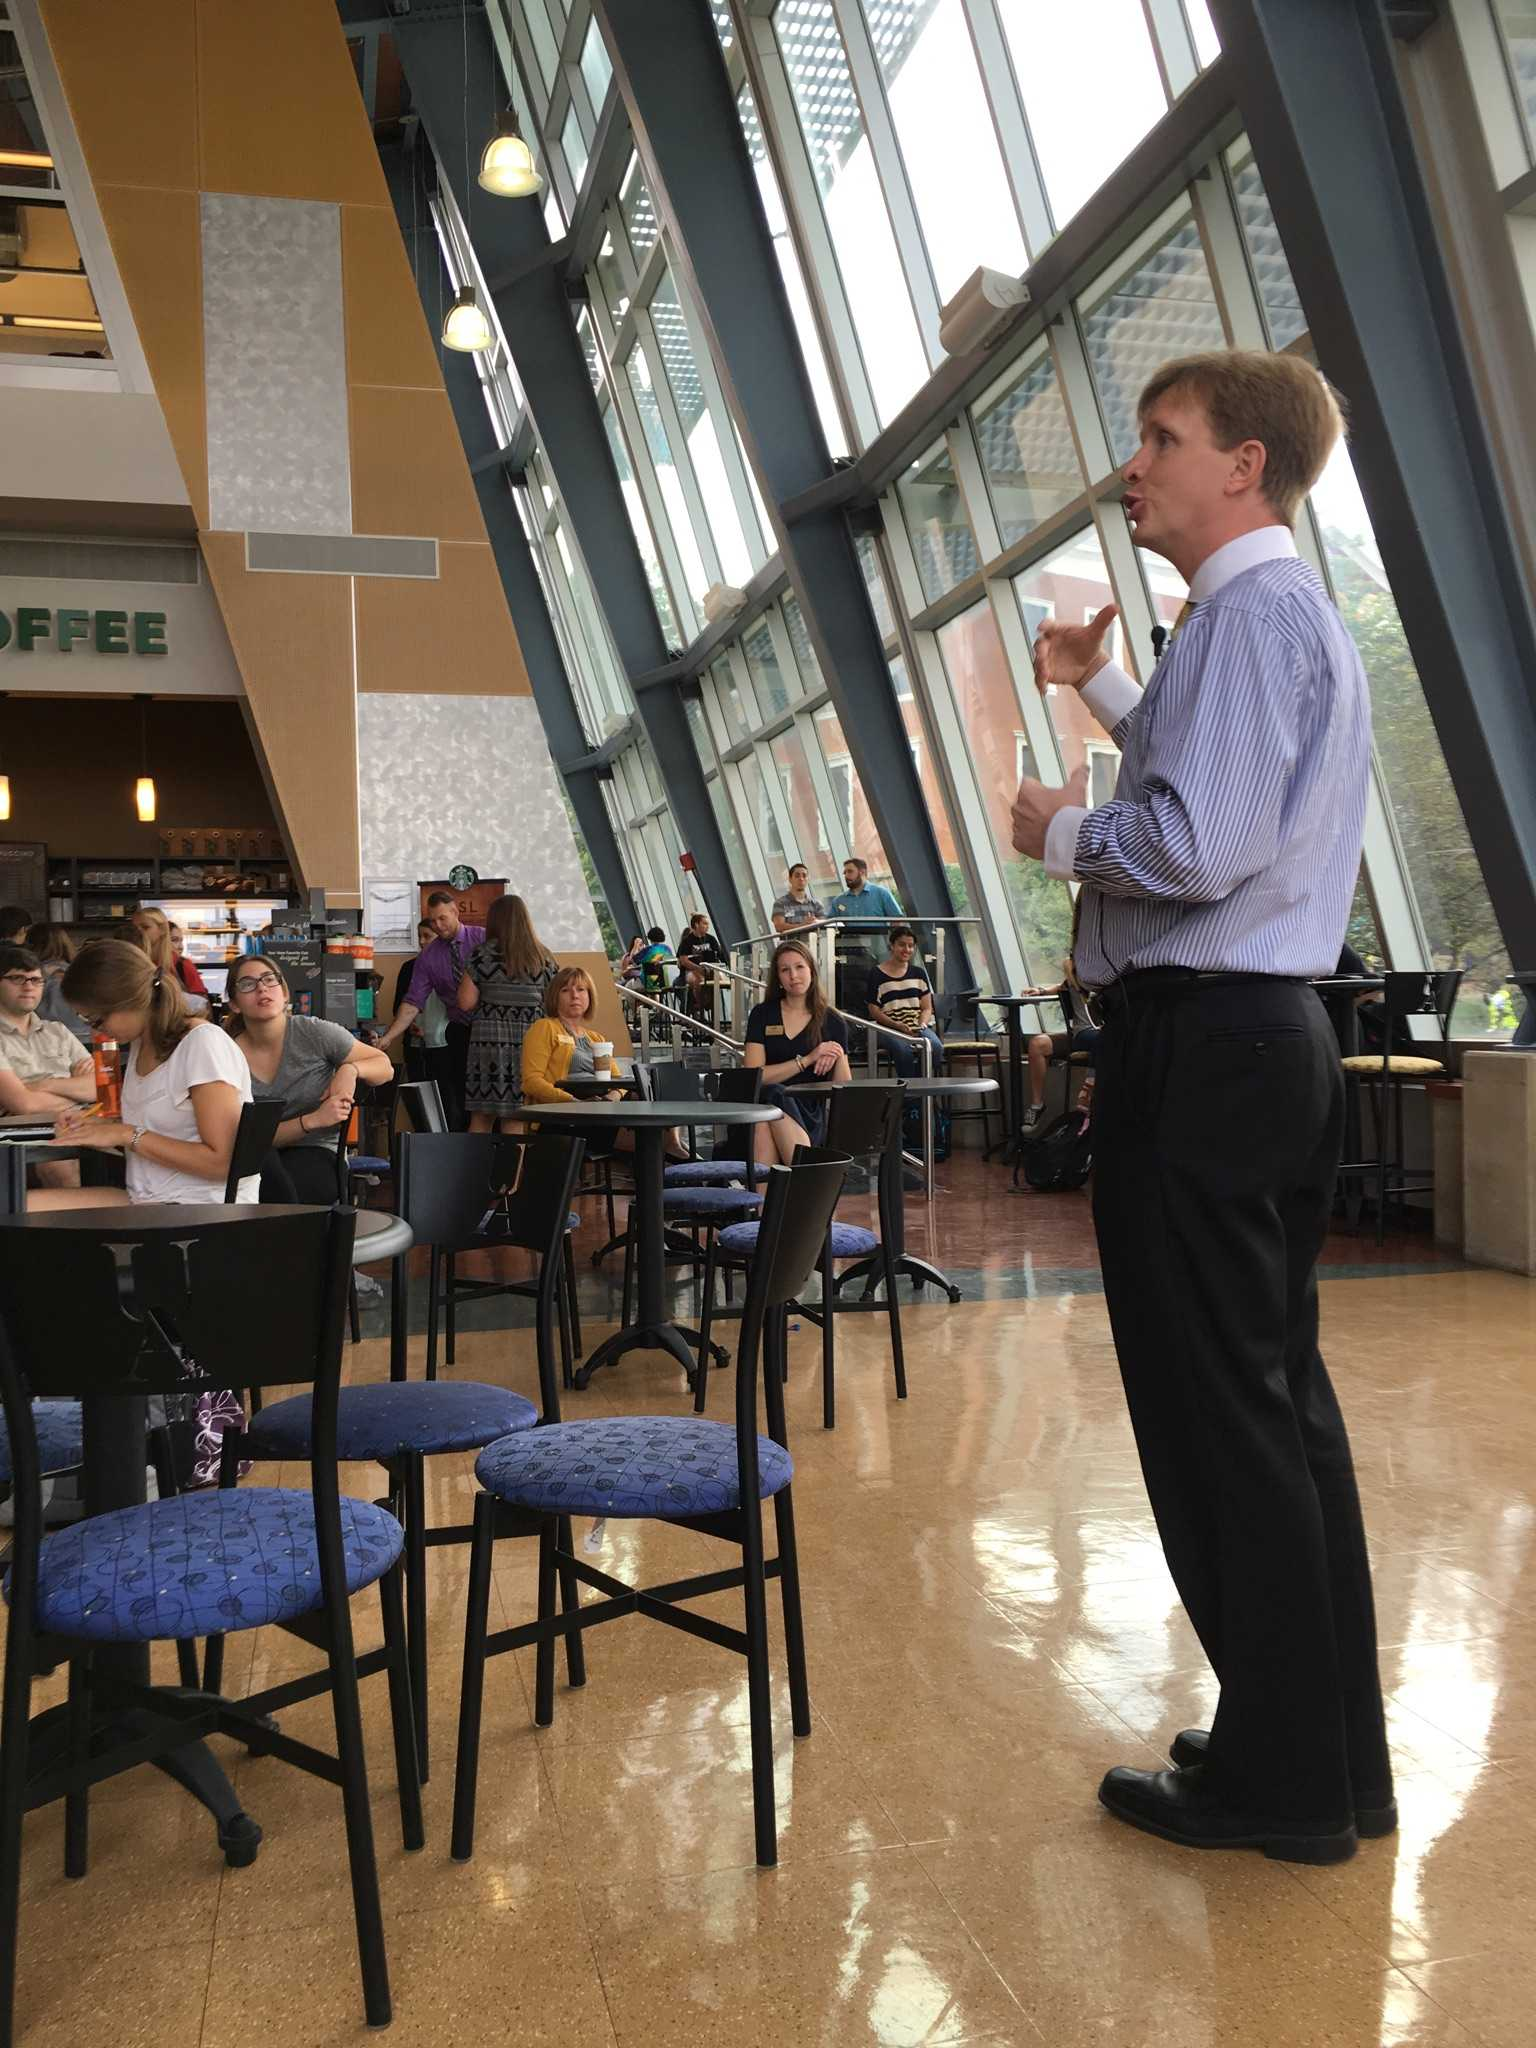 Interim President Wilson talks to students during the Town Hall meeting at Starbucks on Sept. 7.